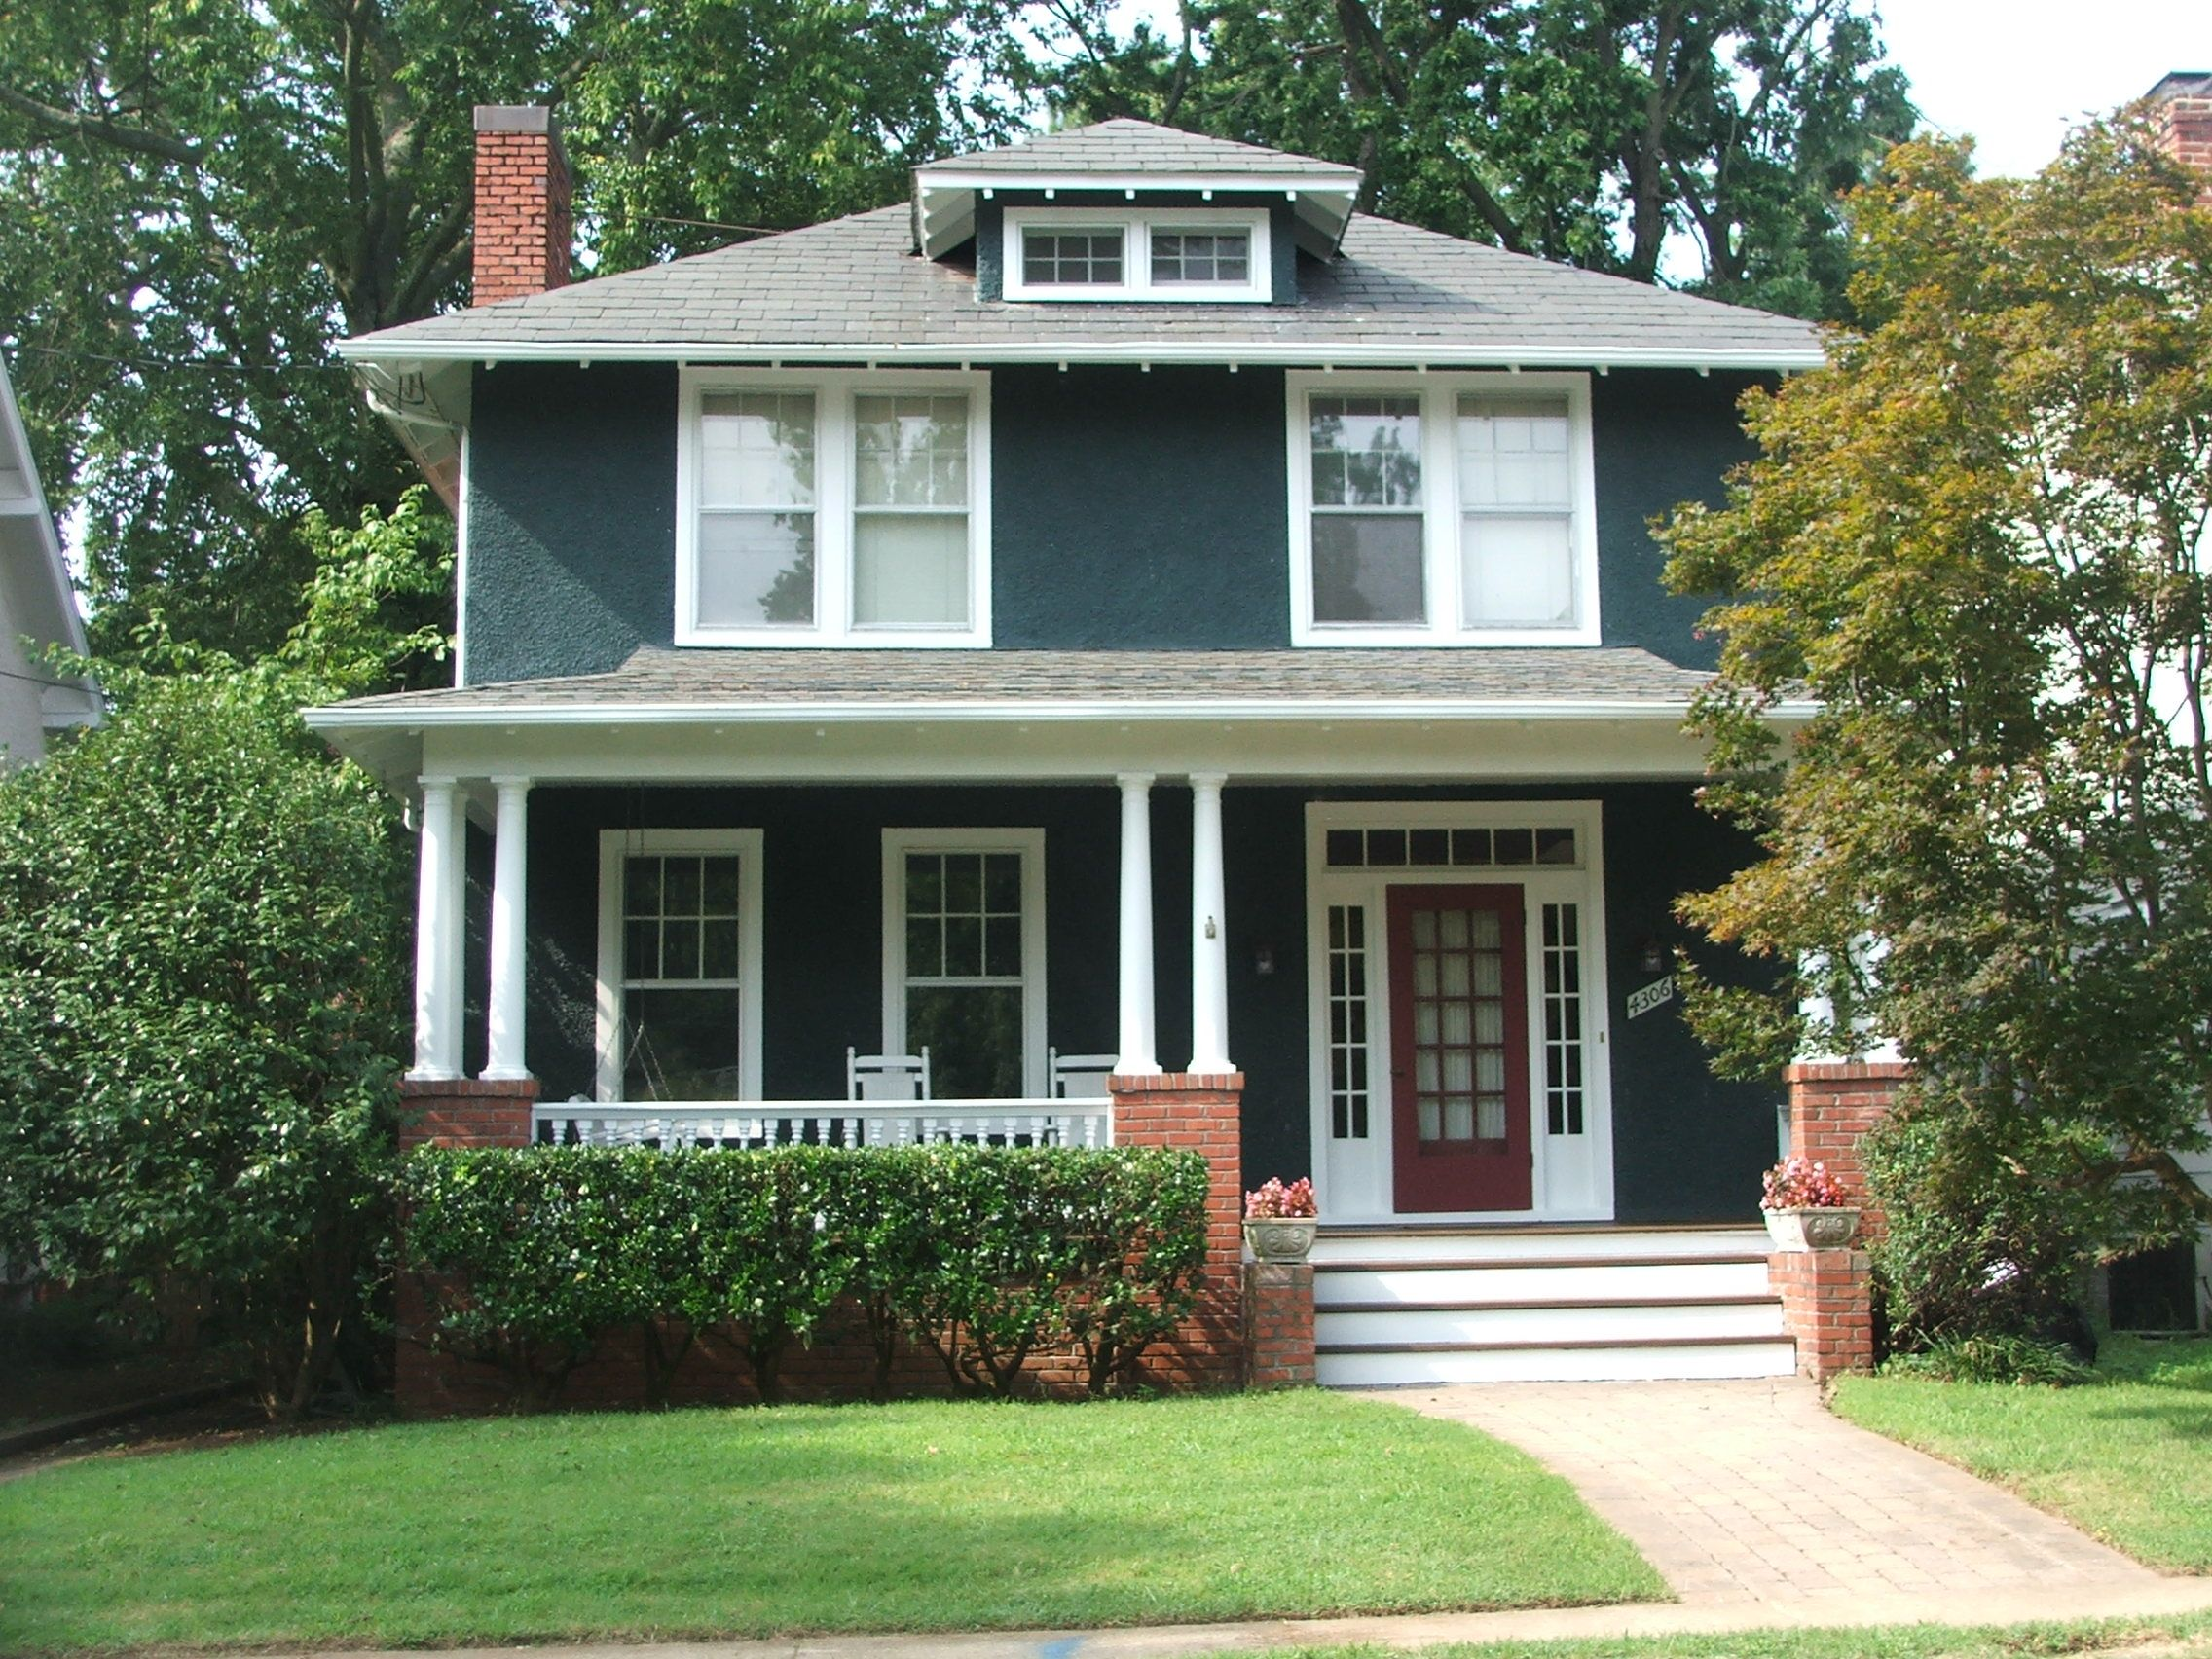 Diy Idea For Old Suitcase American Houses Front Porches